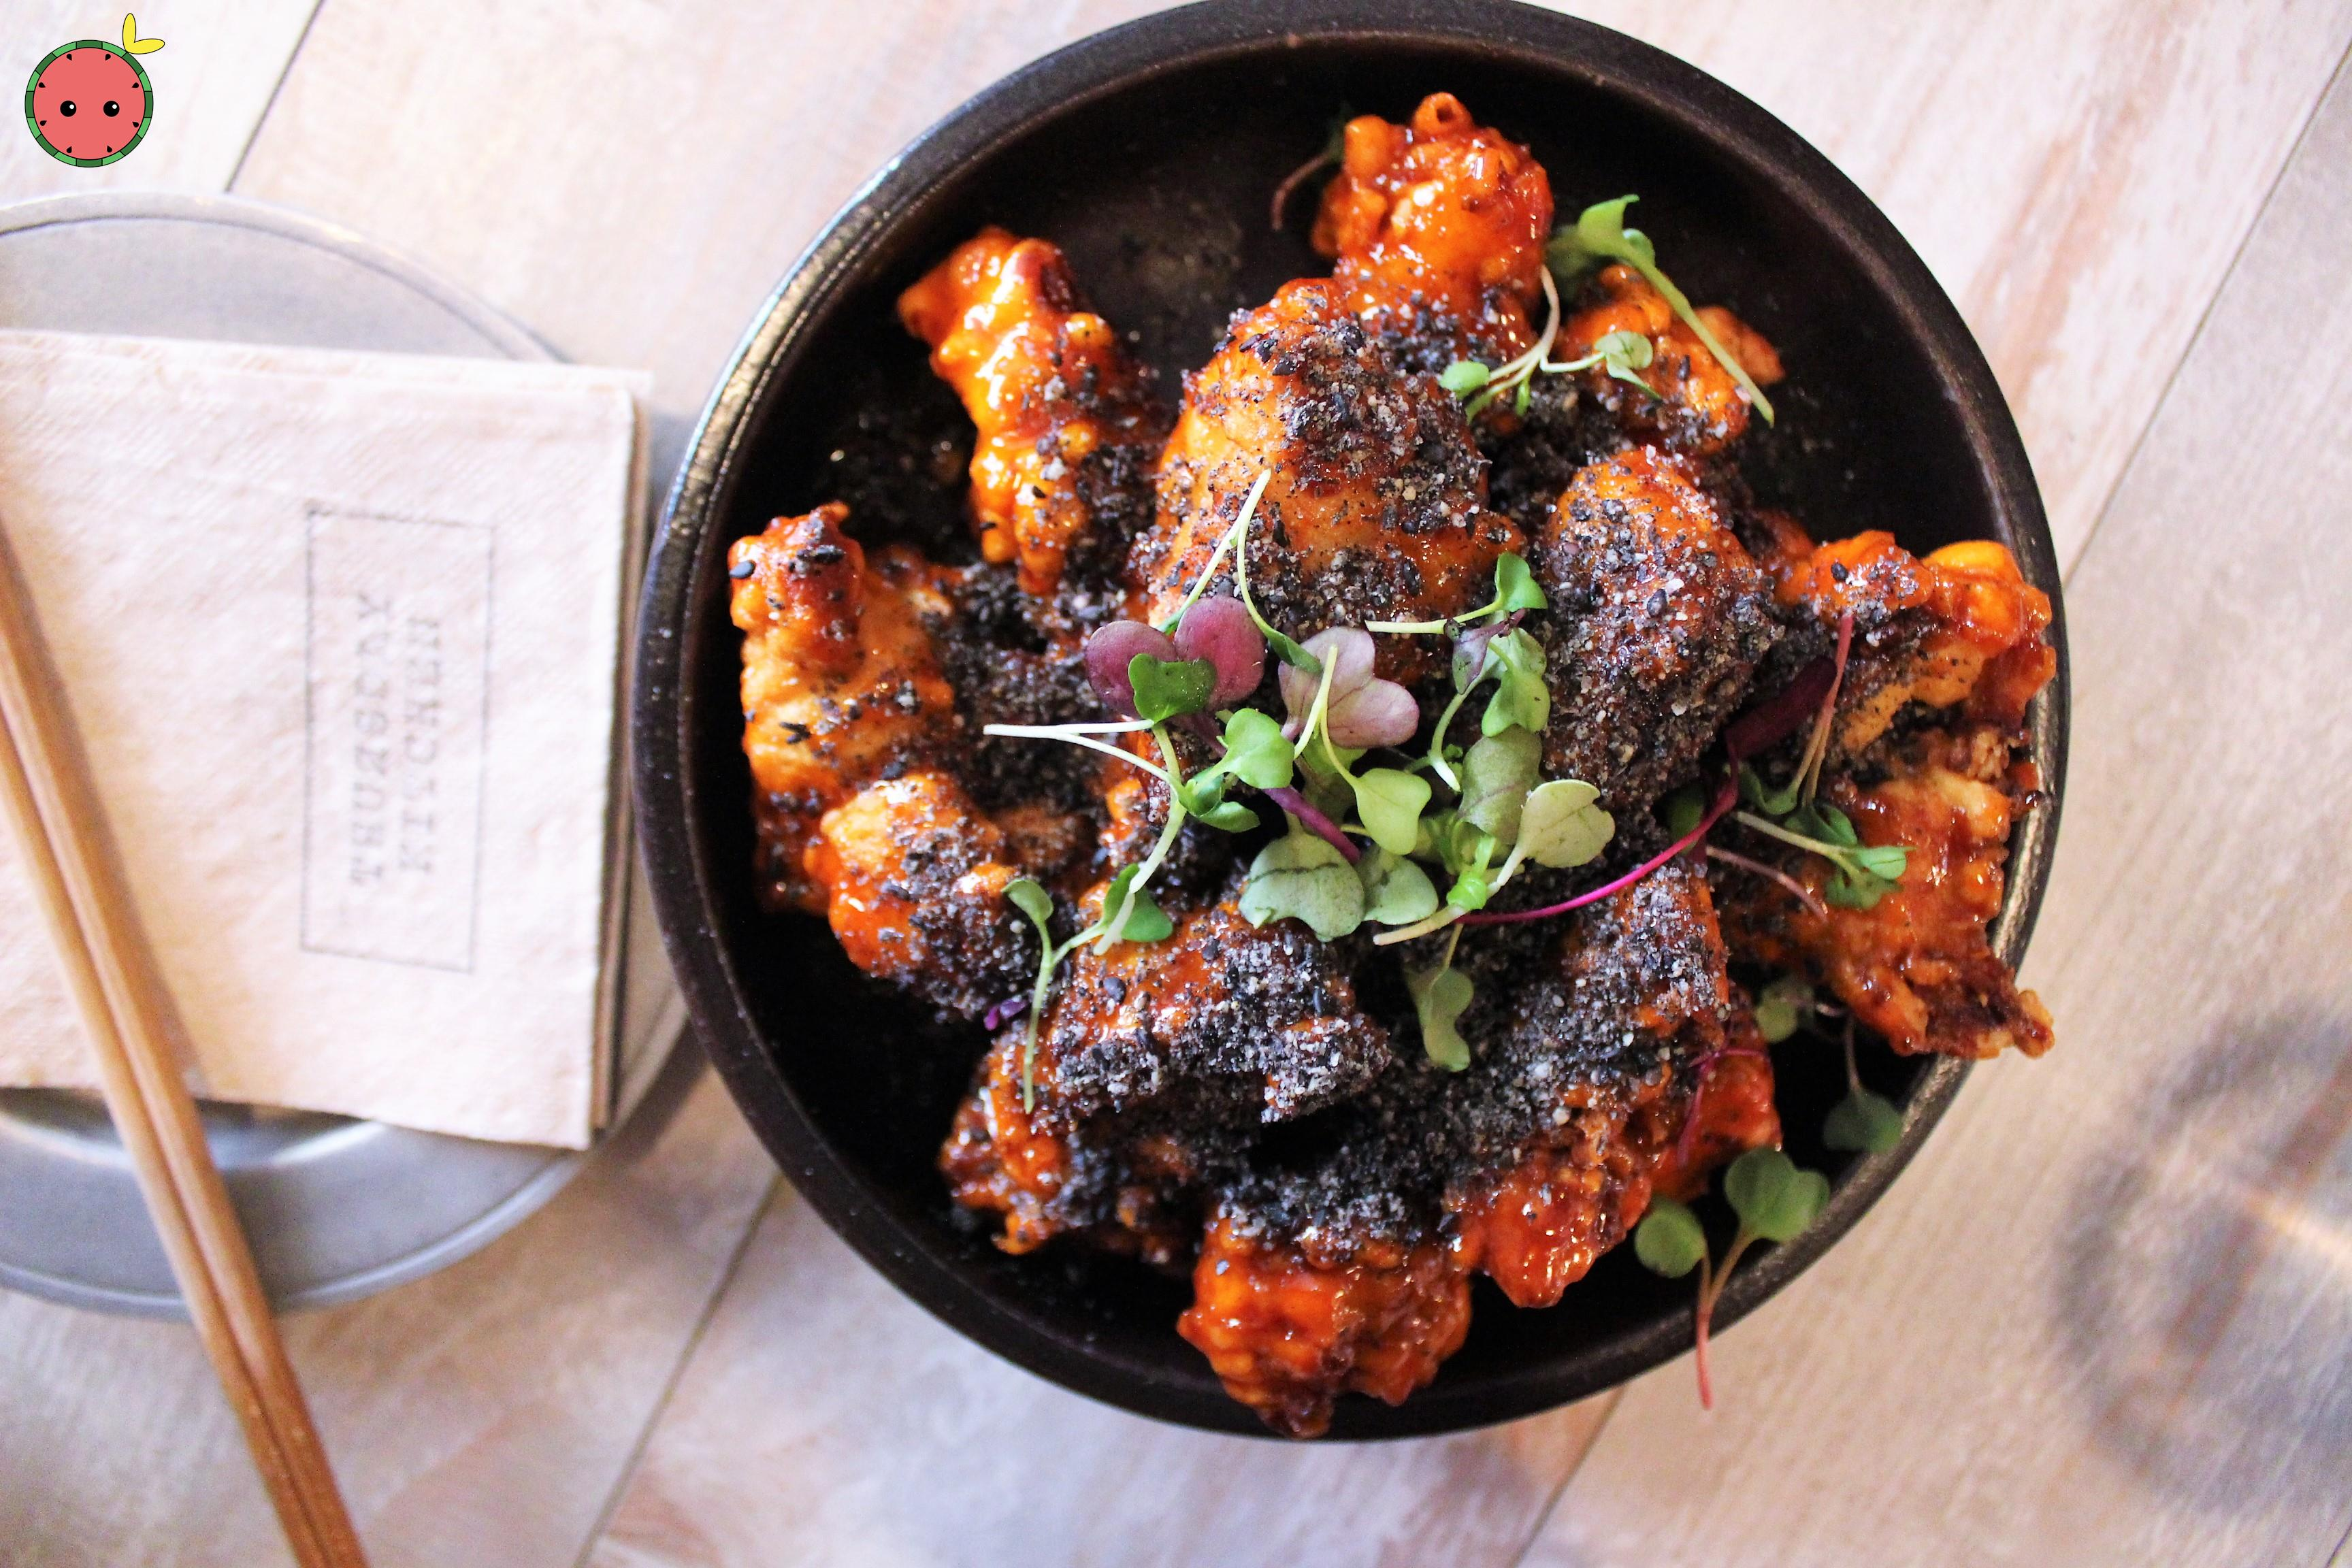 Crispy Chicken - With sweet and spicy sauce and black sesame crumbles